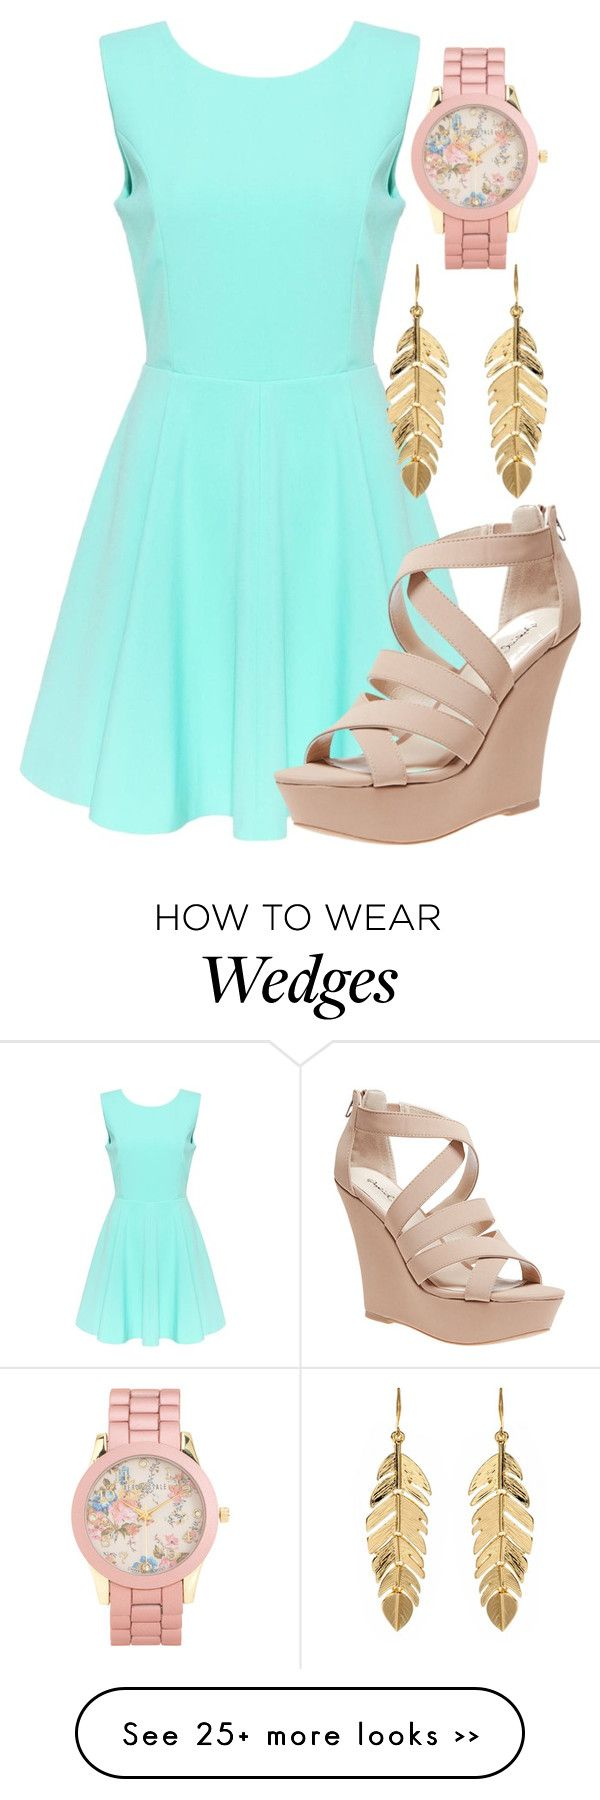 179 best Summer Styles images on Pinterest | Casual clothes, Casual ...